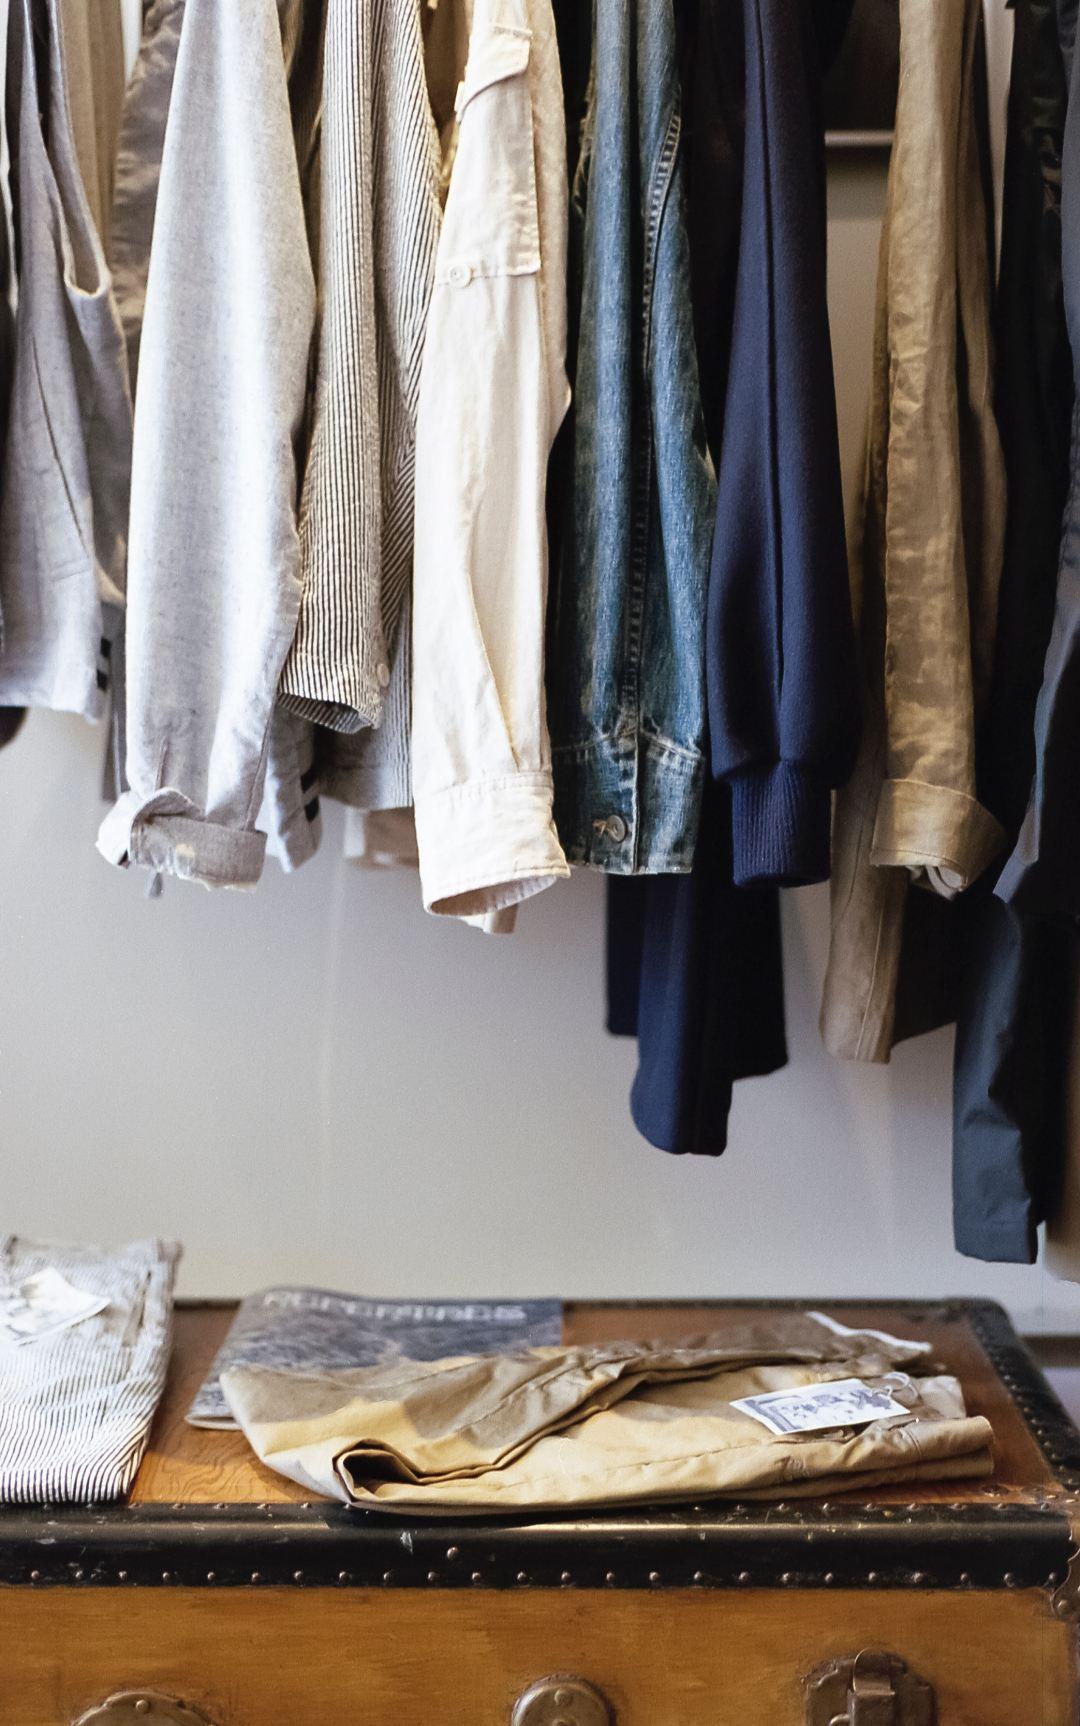 Get out of your style right with these 7 fabulous tips for how to style clothes you already have. From how to get started in your closet to adding pop...